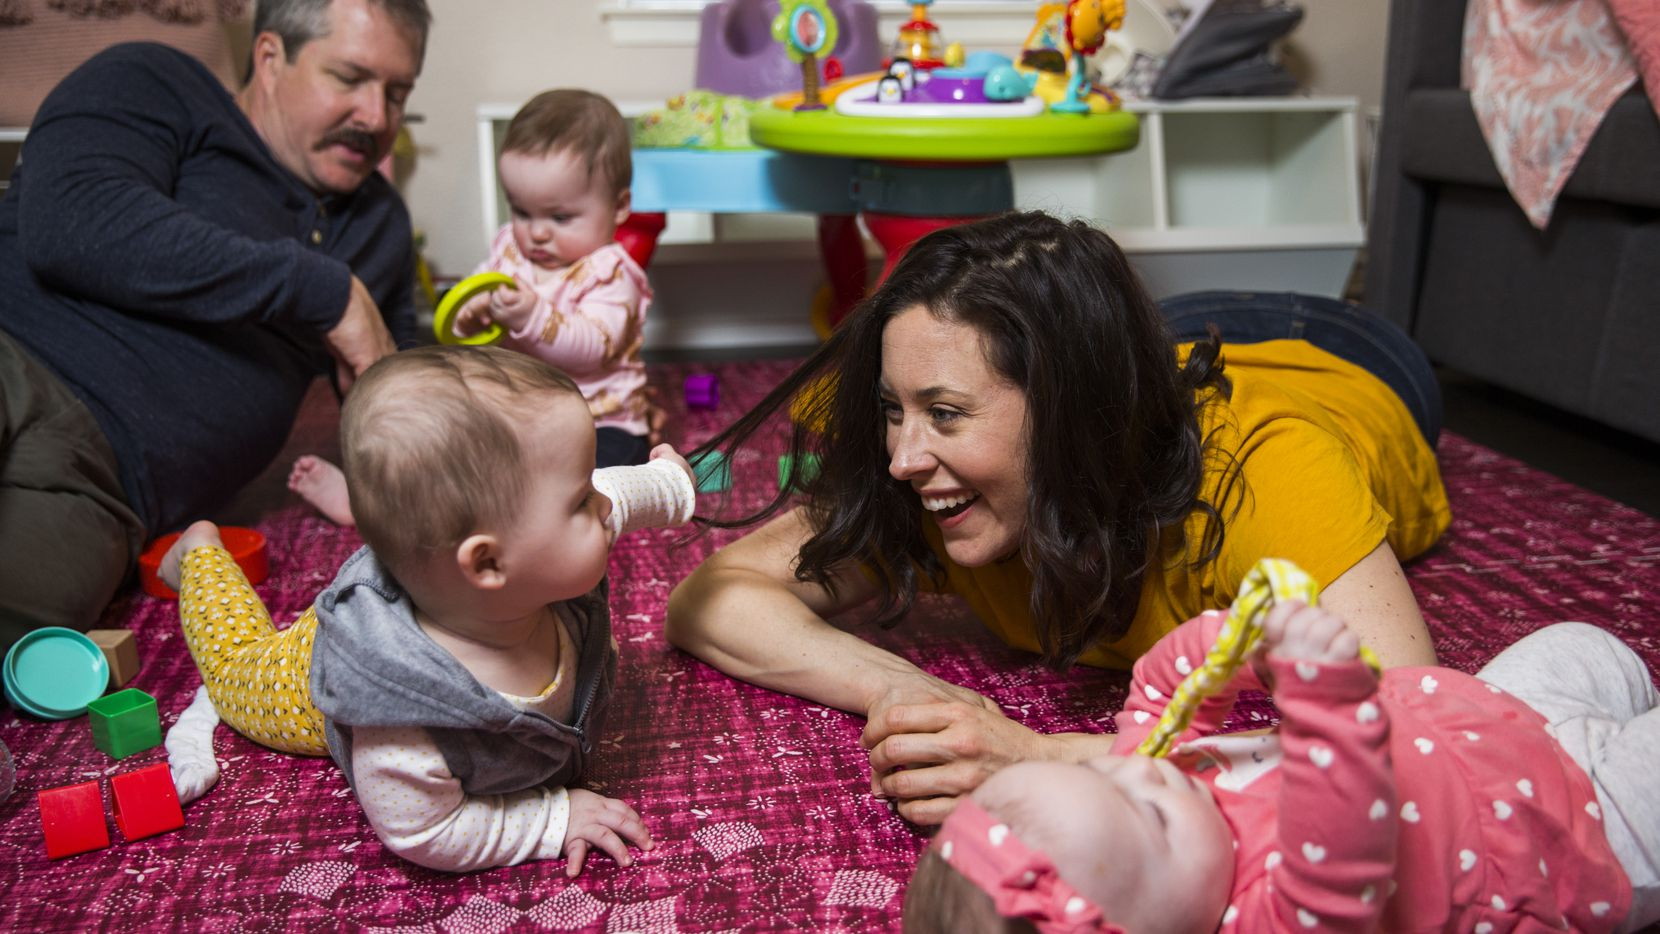 Actress Allison Pistorius (right) and her husband, actor Chris Hury, play with their triplets, Austen Finch Pistorius Hury (top, with her dad), Birdie Sue Pistorius Hury (right) and Charlie Faye Pistorius Hury (center, with her mom), on Wednesday, October 9, 2019. Pistorius, who had triplets 11 months ago, is playing the part of Dracula at Theatre Three in Dallas.